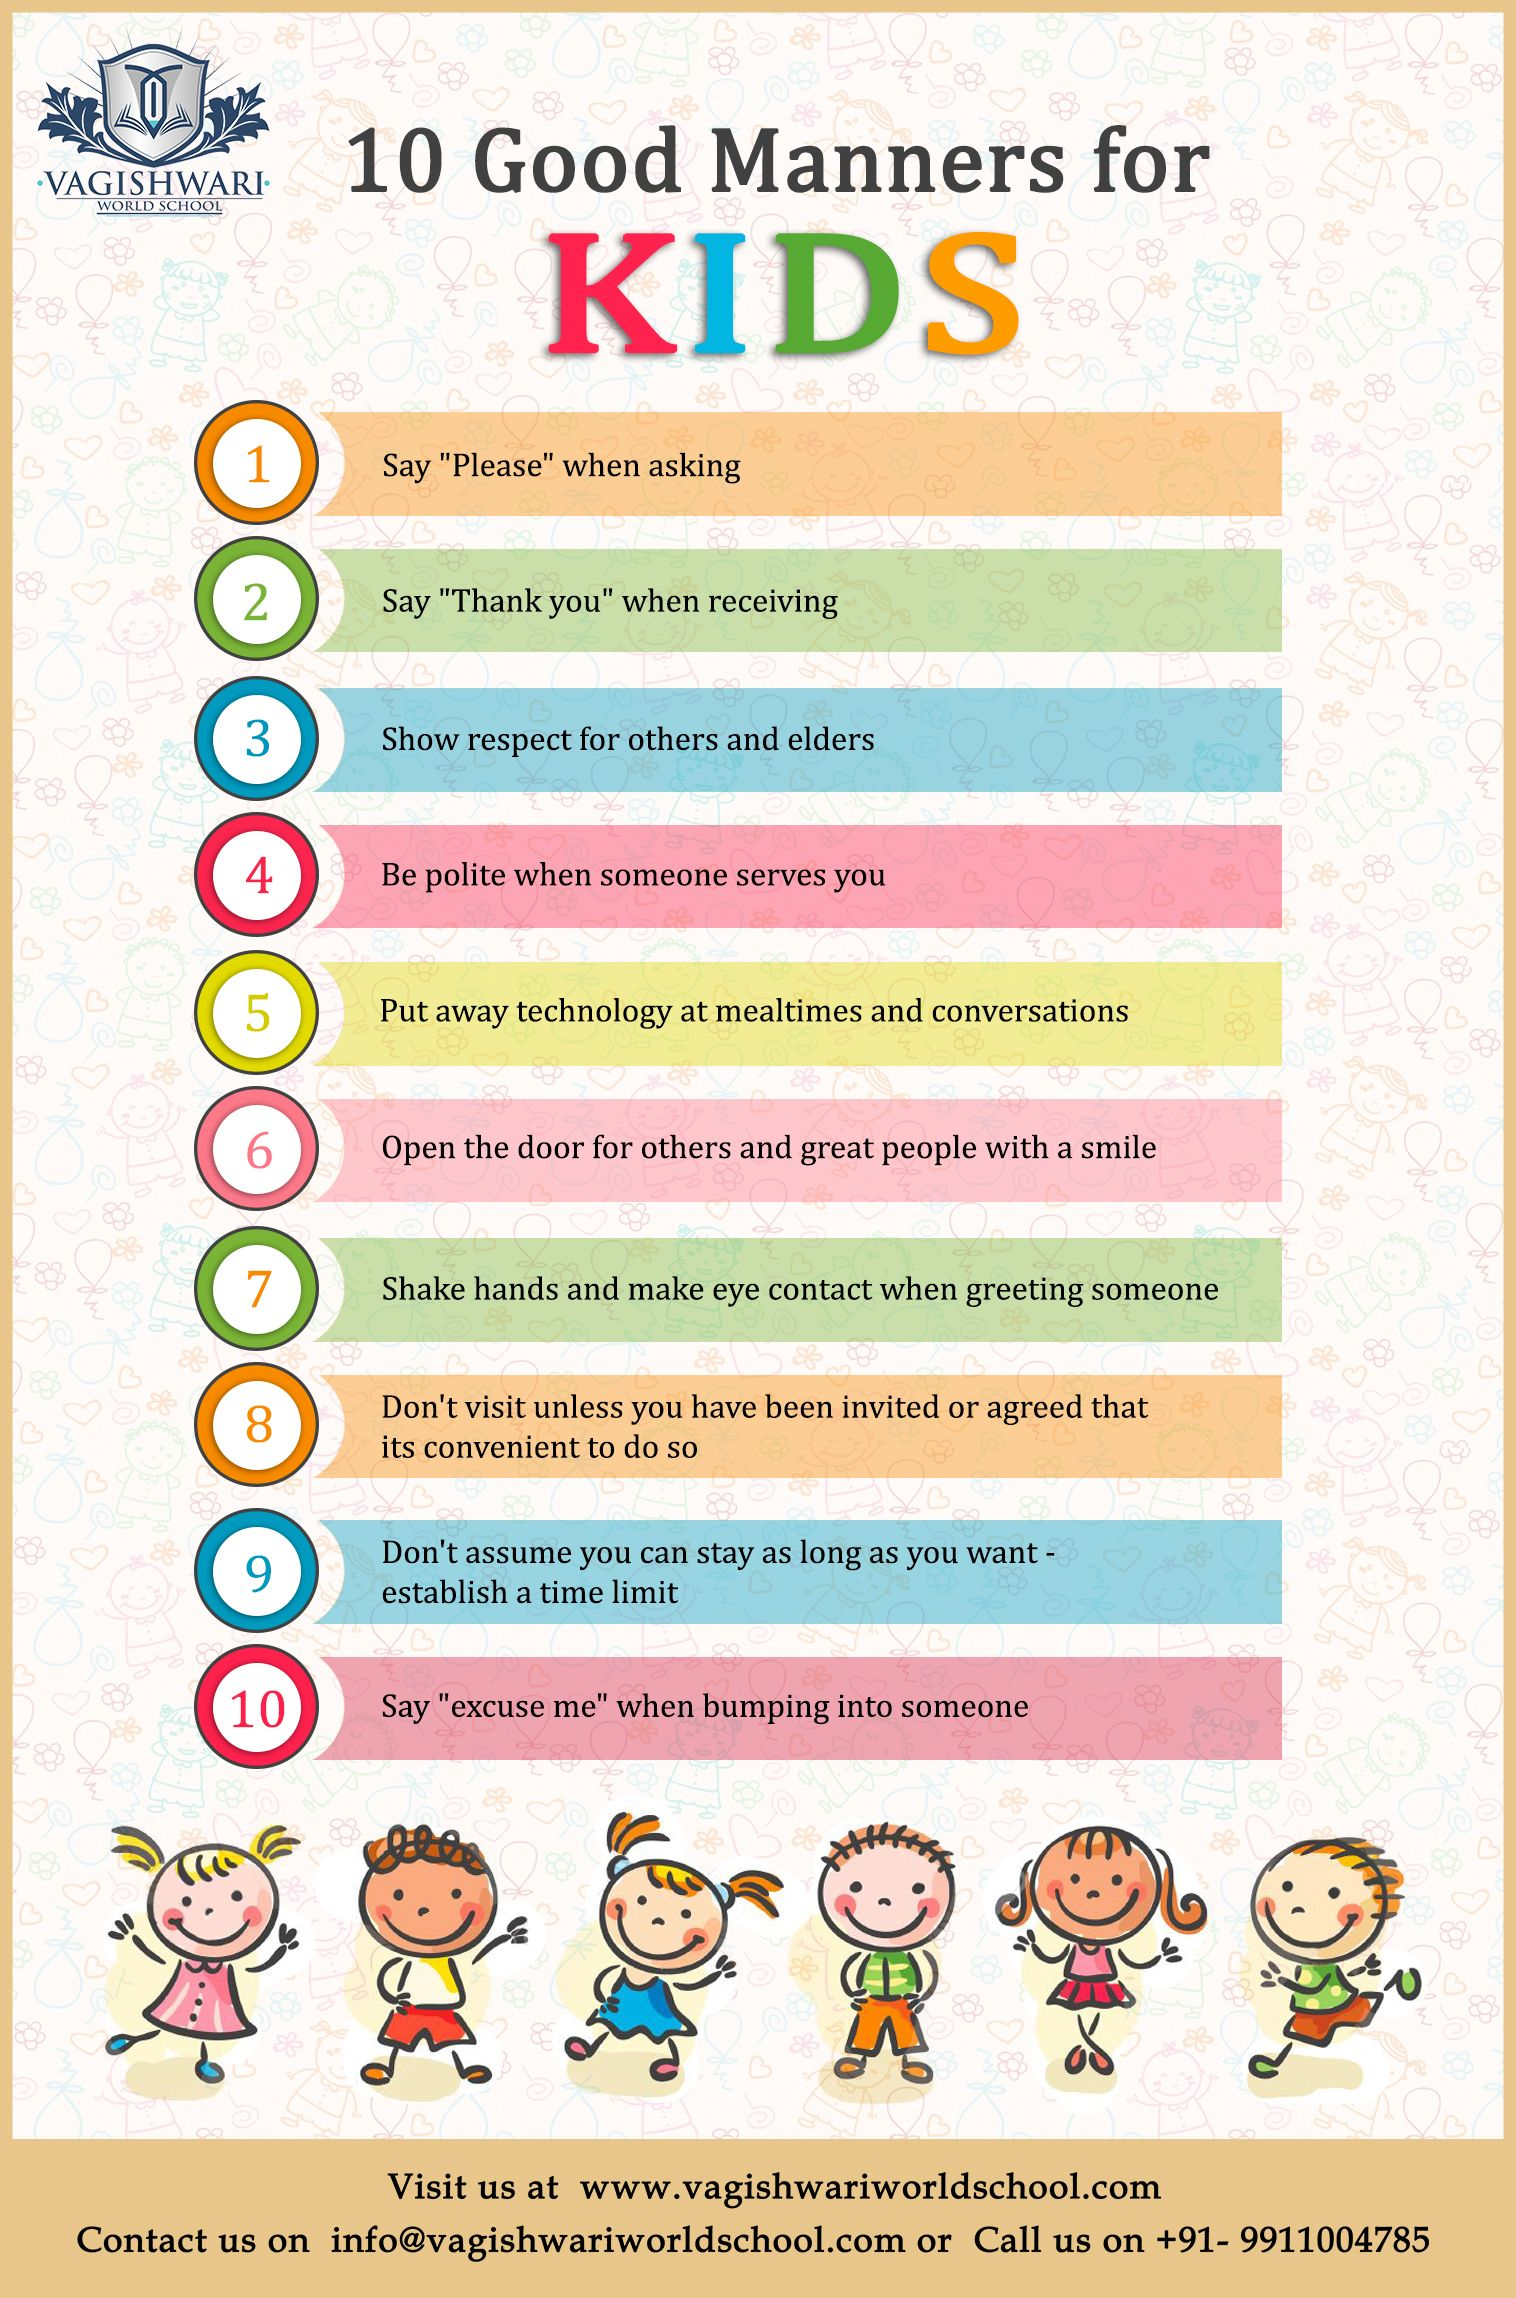 10 Good Manner For Kids Manners Morals Commonsense